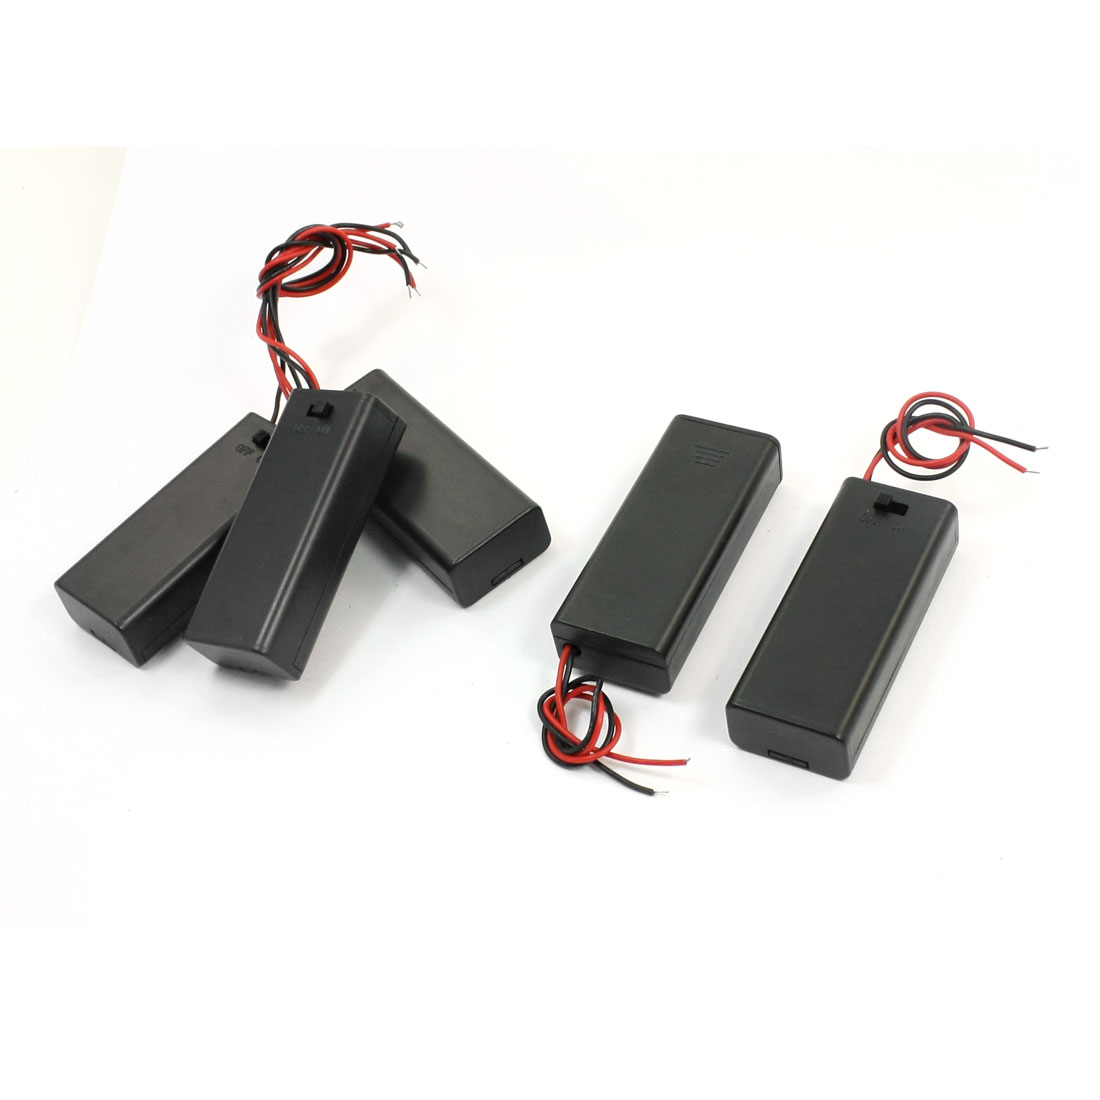 5 Pcs Two Wired Leads ON/OFF Switch Plastic Shell 2 x 1.5V AAA Battery Holder Case Box w Slide Cover